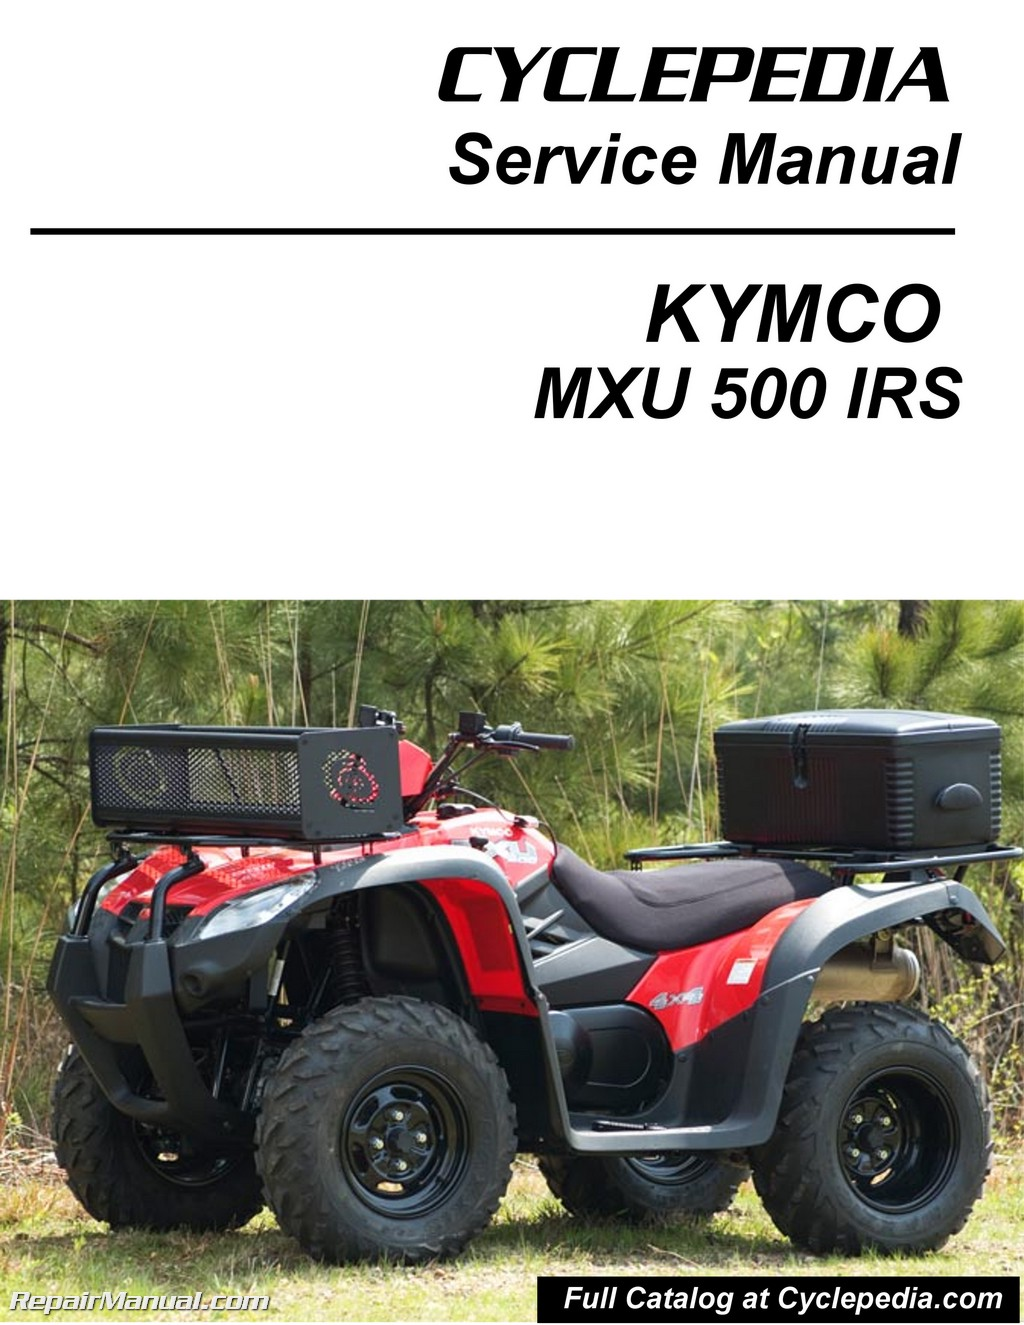 Kymco Mxu 500 4x4 Atv Oil Pump Replacement Lubrication System 11ledknightridercircuitgif 2010 2012 Service Manual Printed By Cyclepedia Rh Repairmanual Com